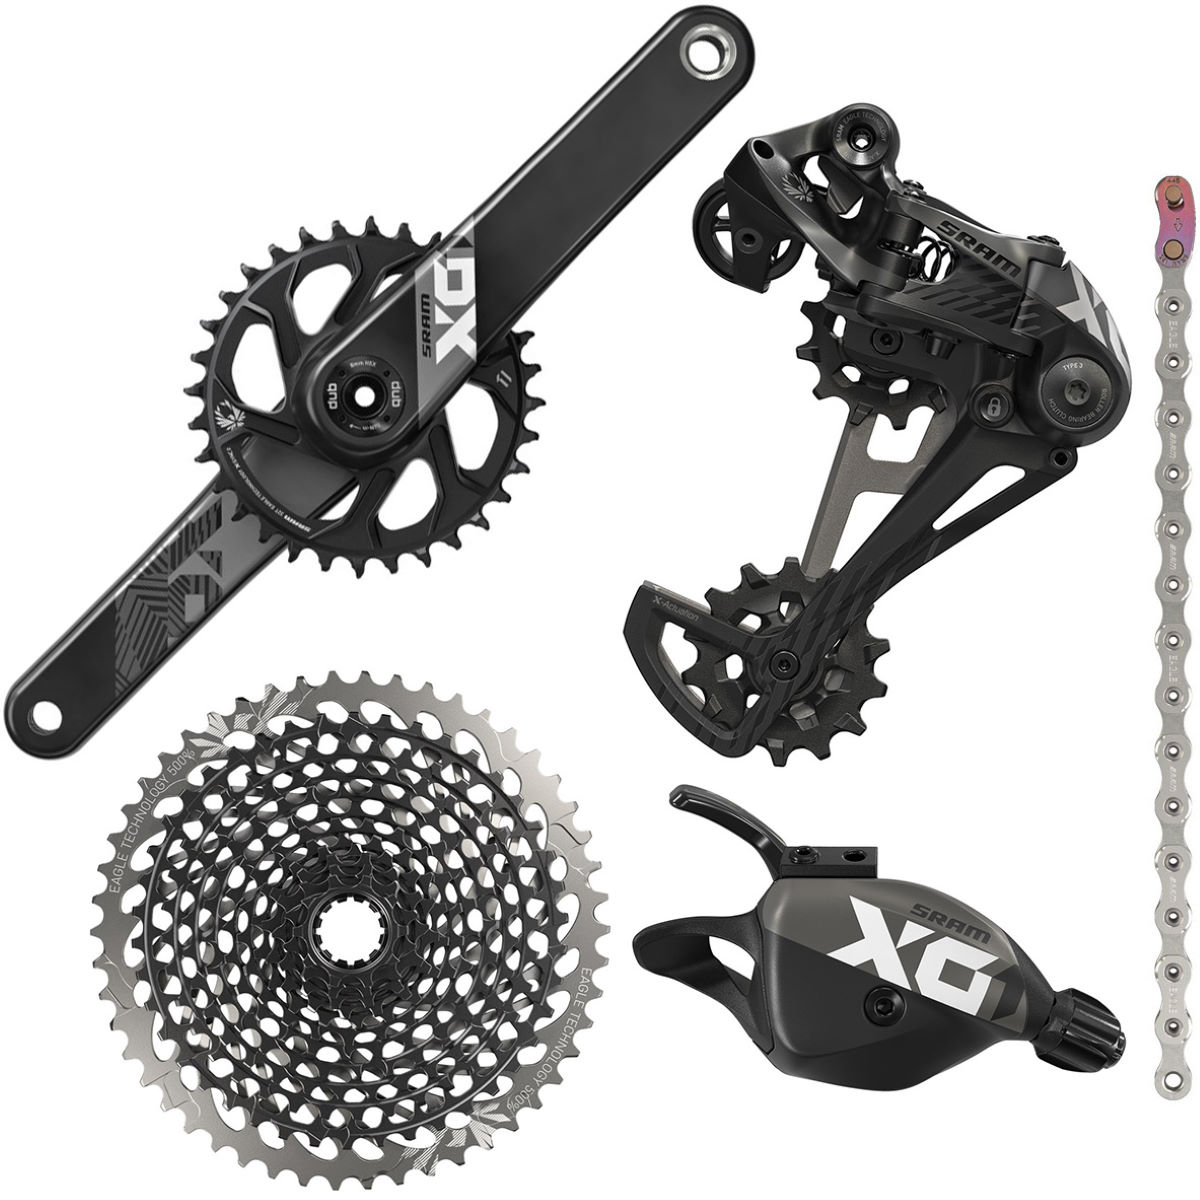 SRAM SRAM X01 12sp Eagle DUB Groupset   Groupsets